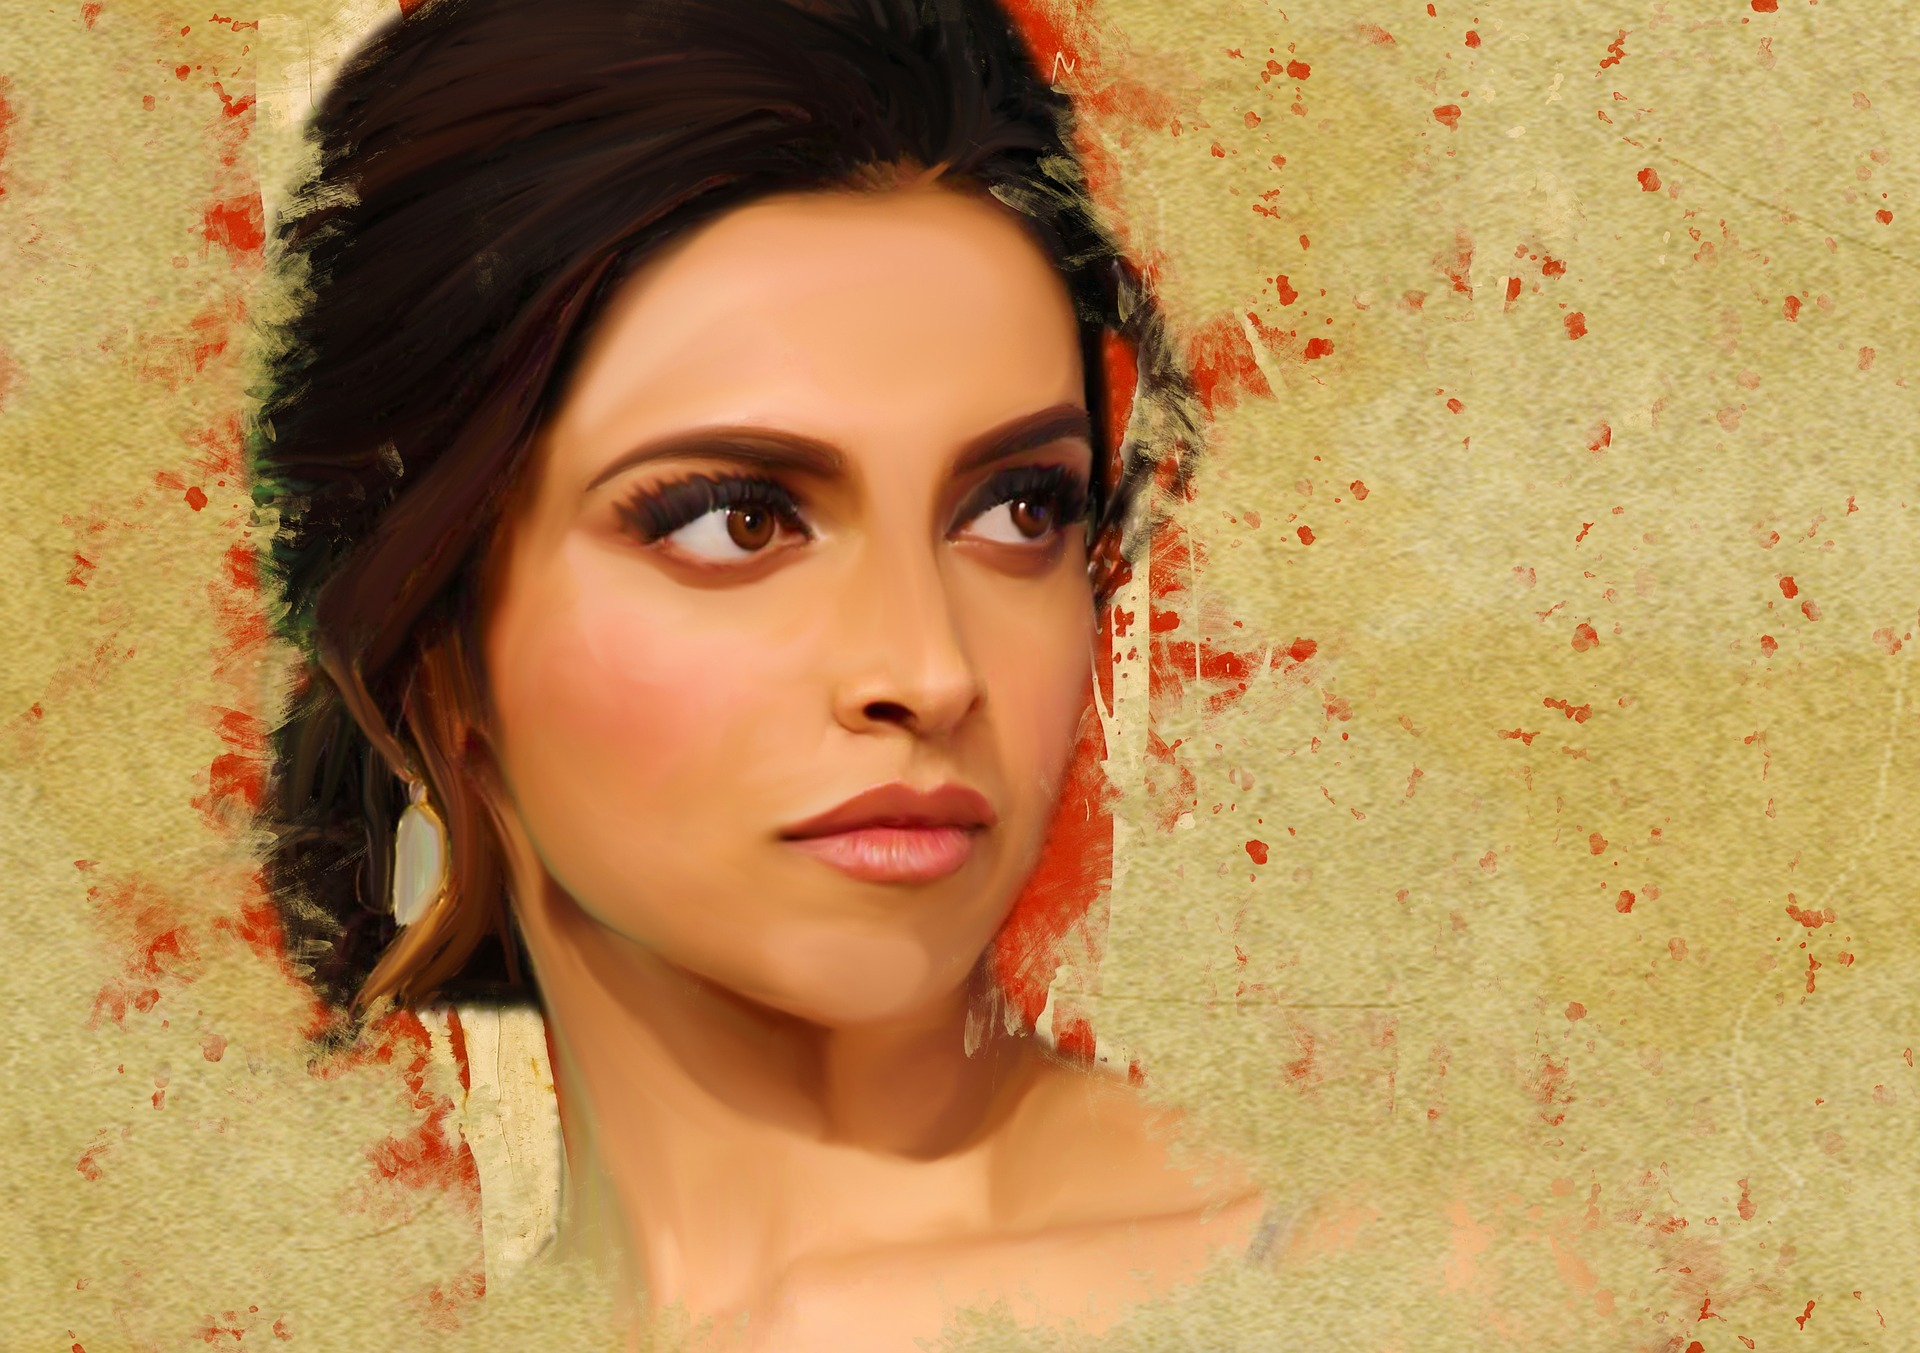 deepika padukone - photo #23